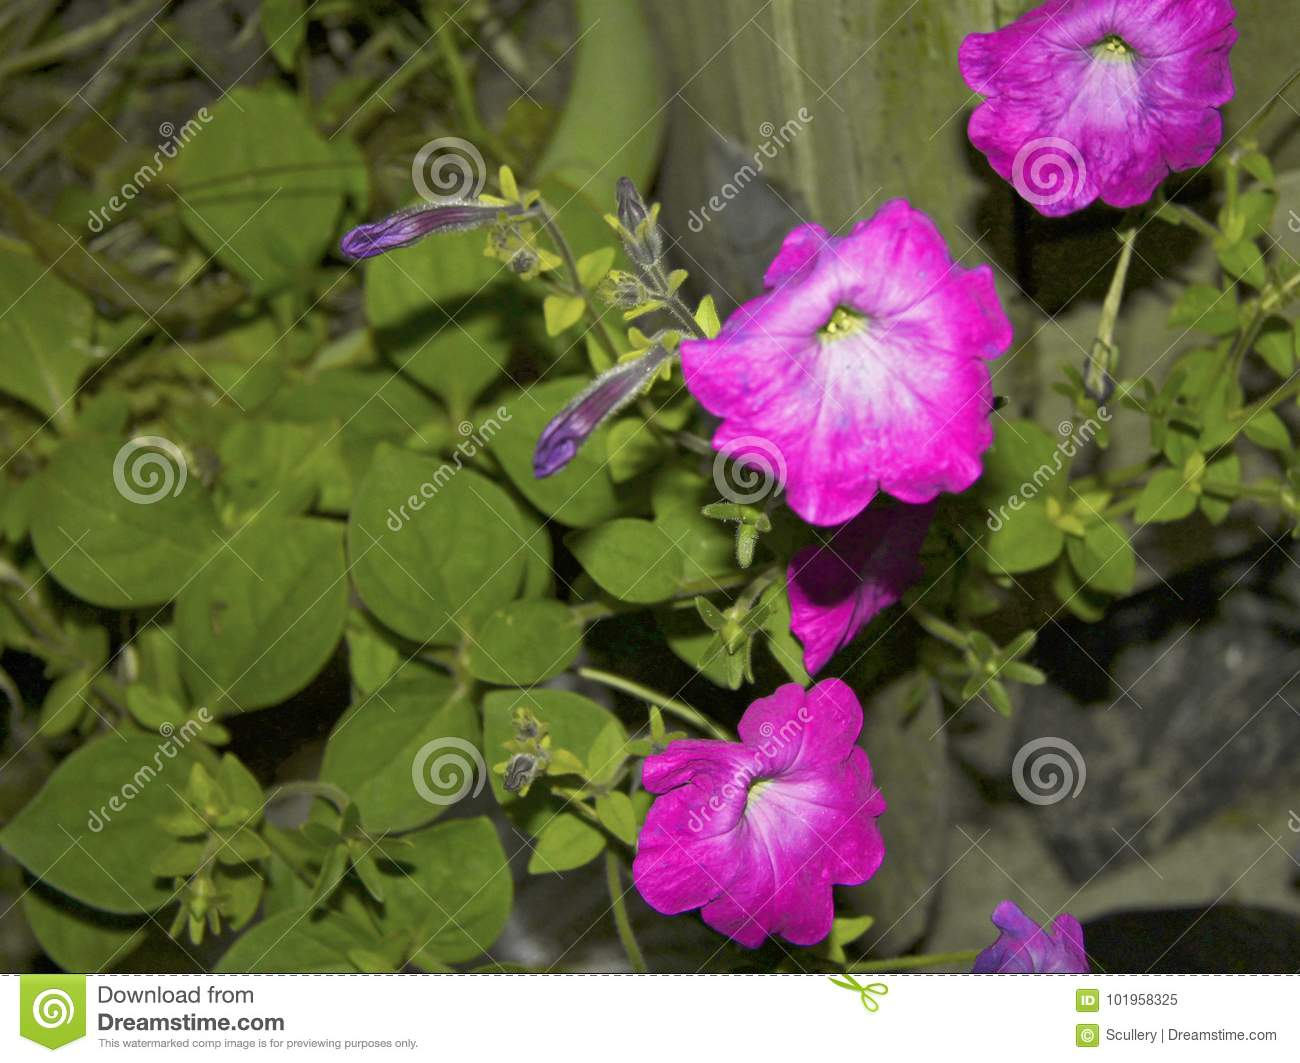 Colorful Petunia Flowers Blooming In The Garden Stock Image - Image ...